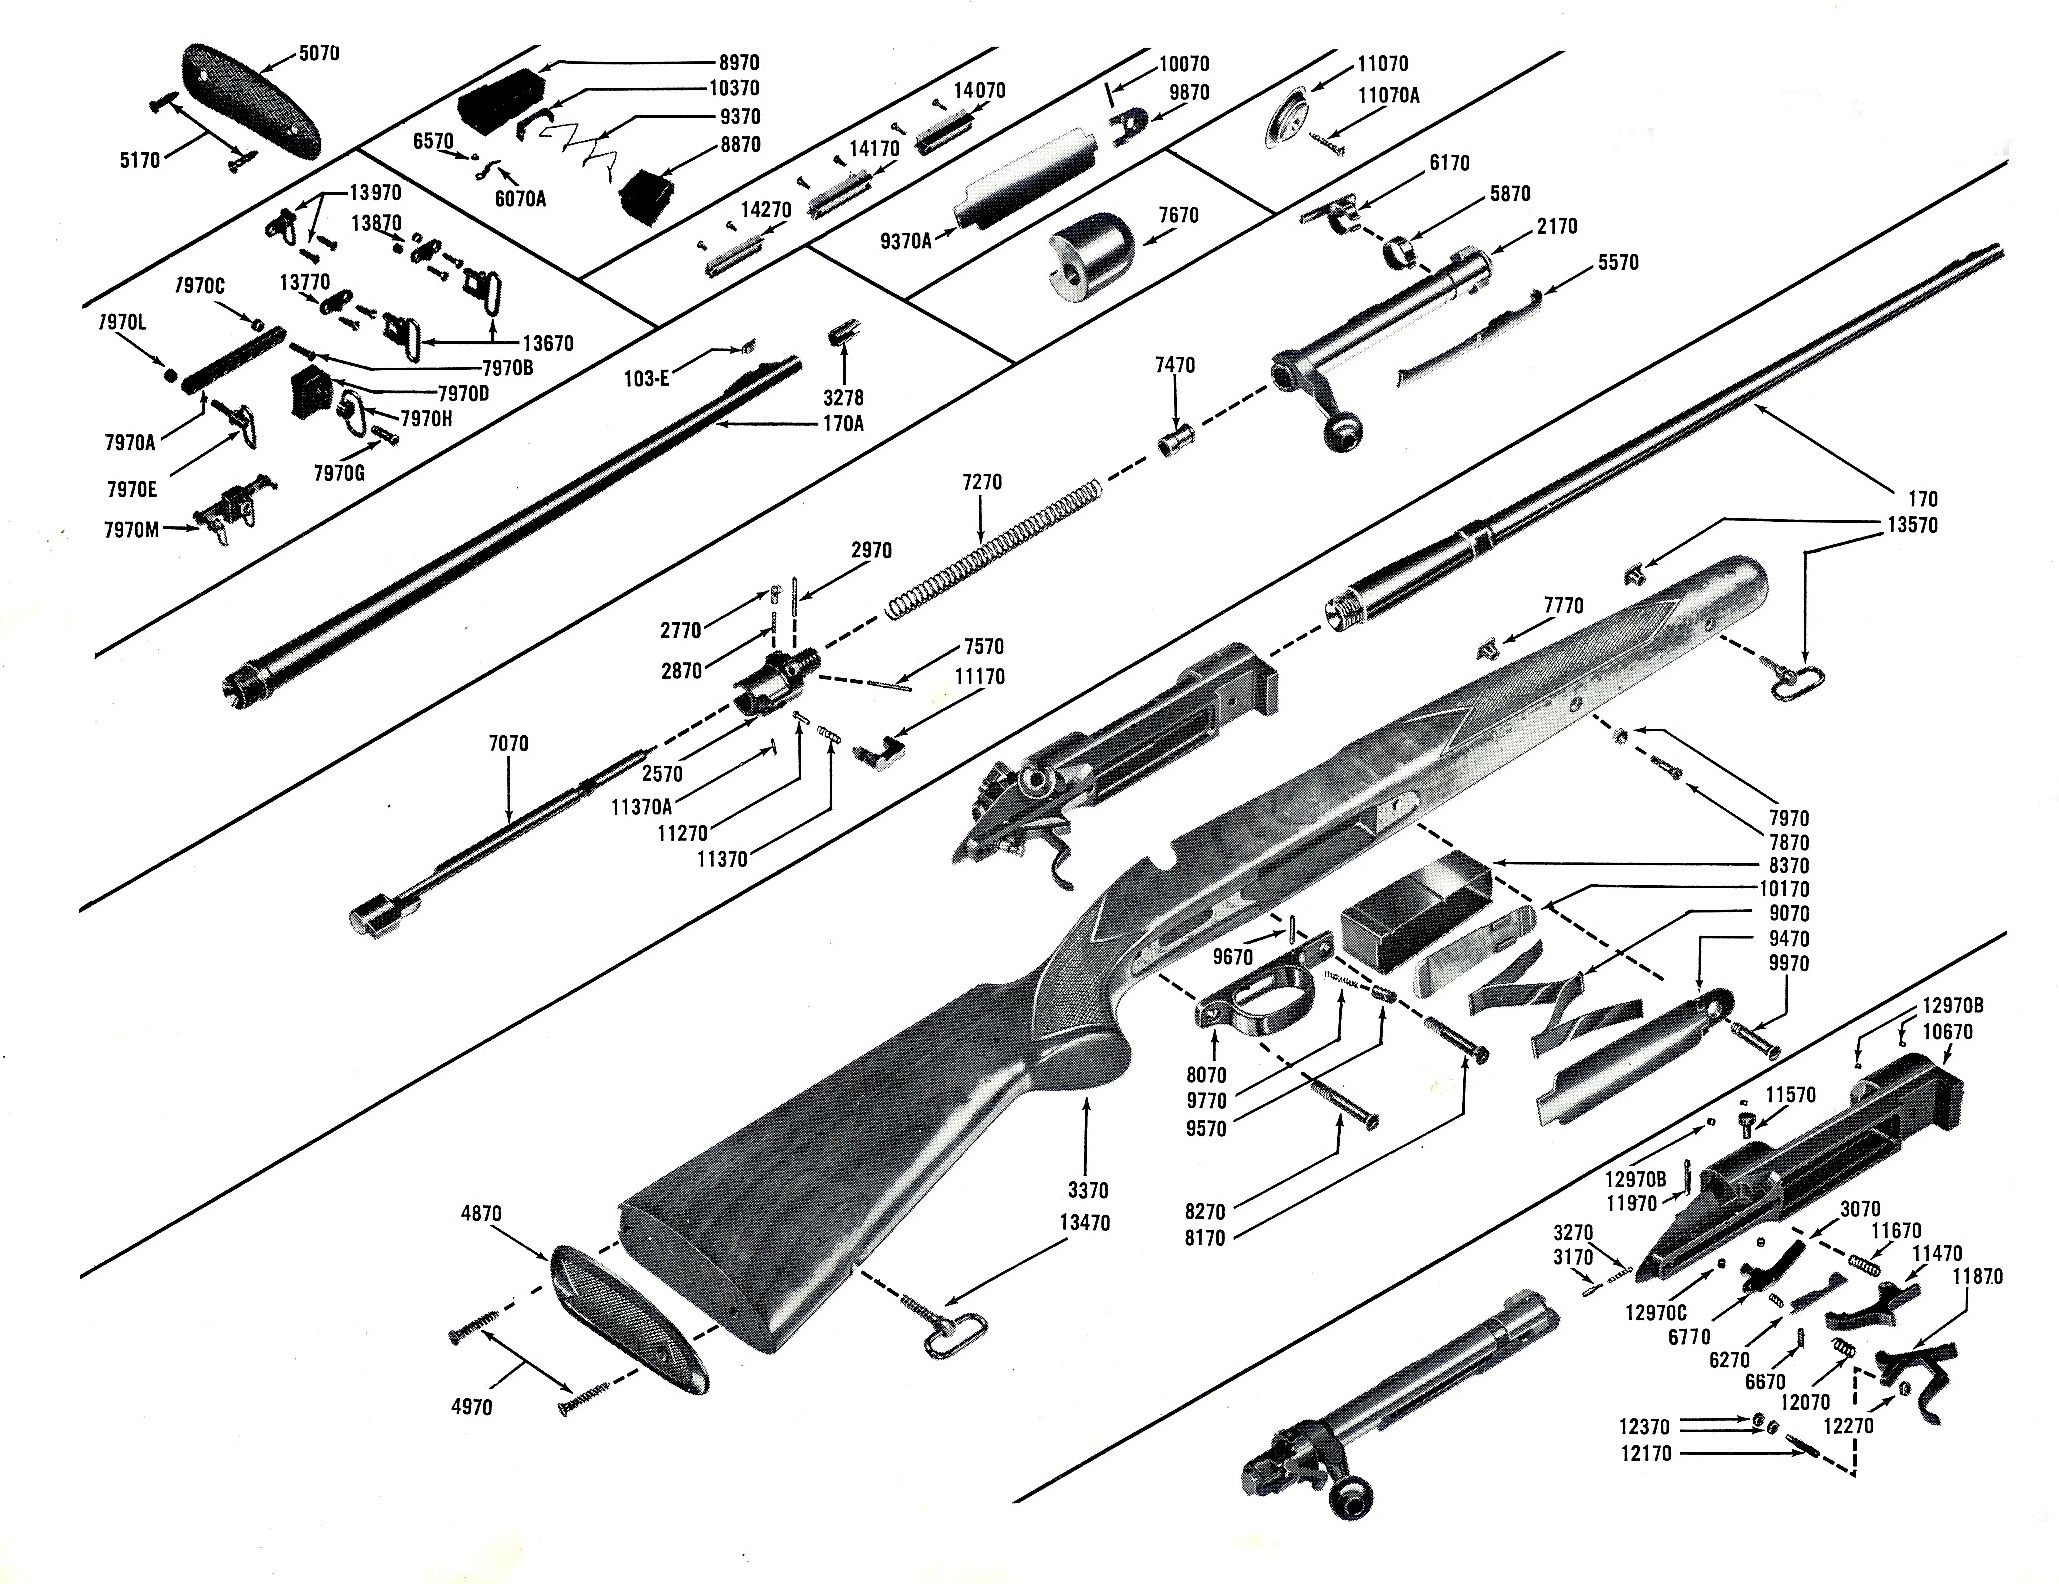 Post-war production Model 70 Pre-64 rifle exploded diagram